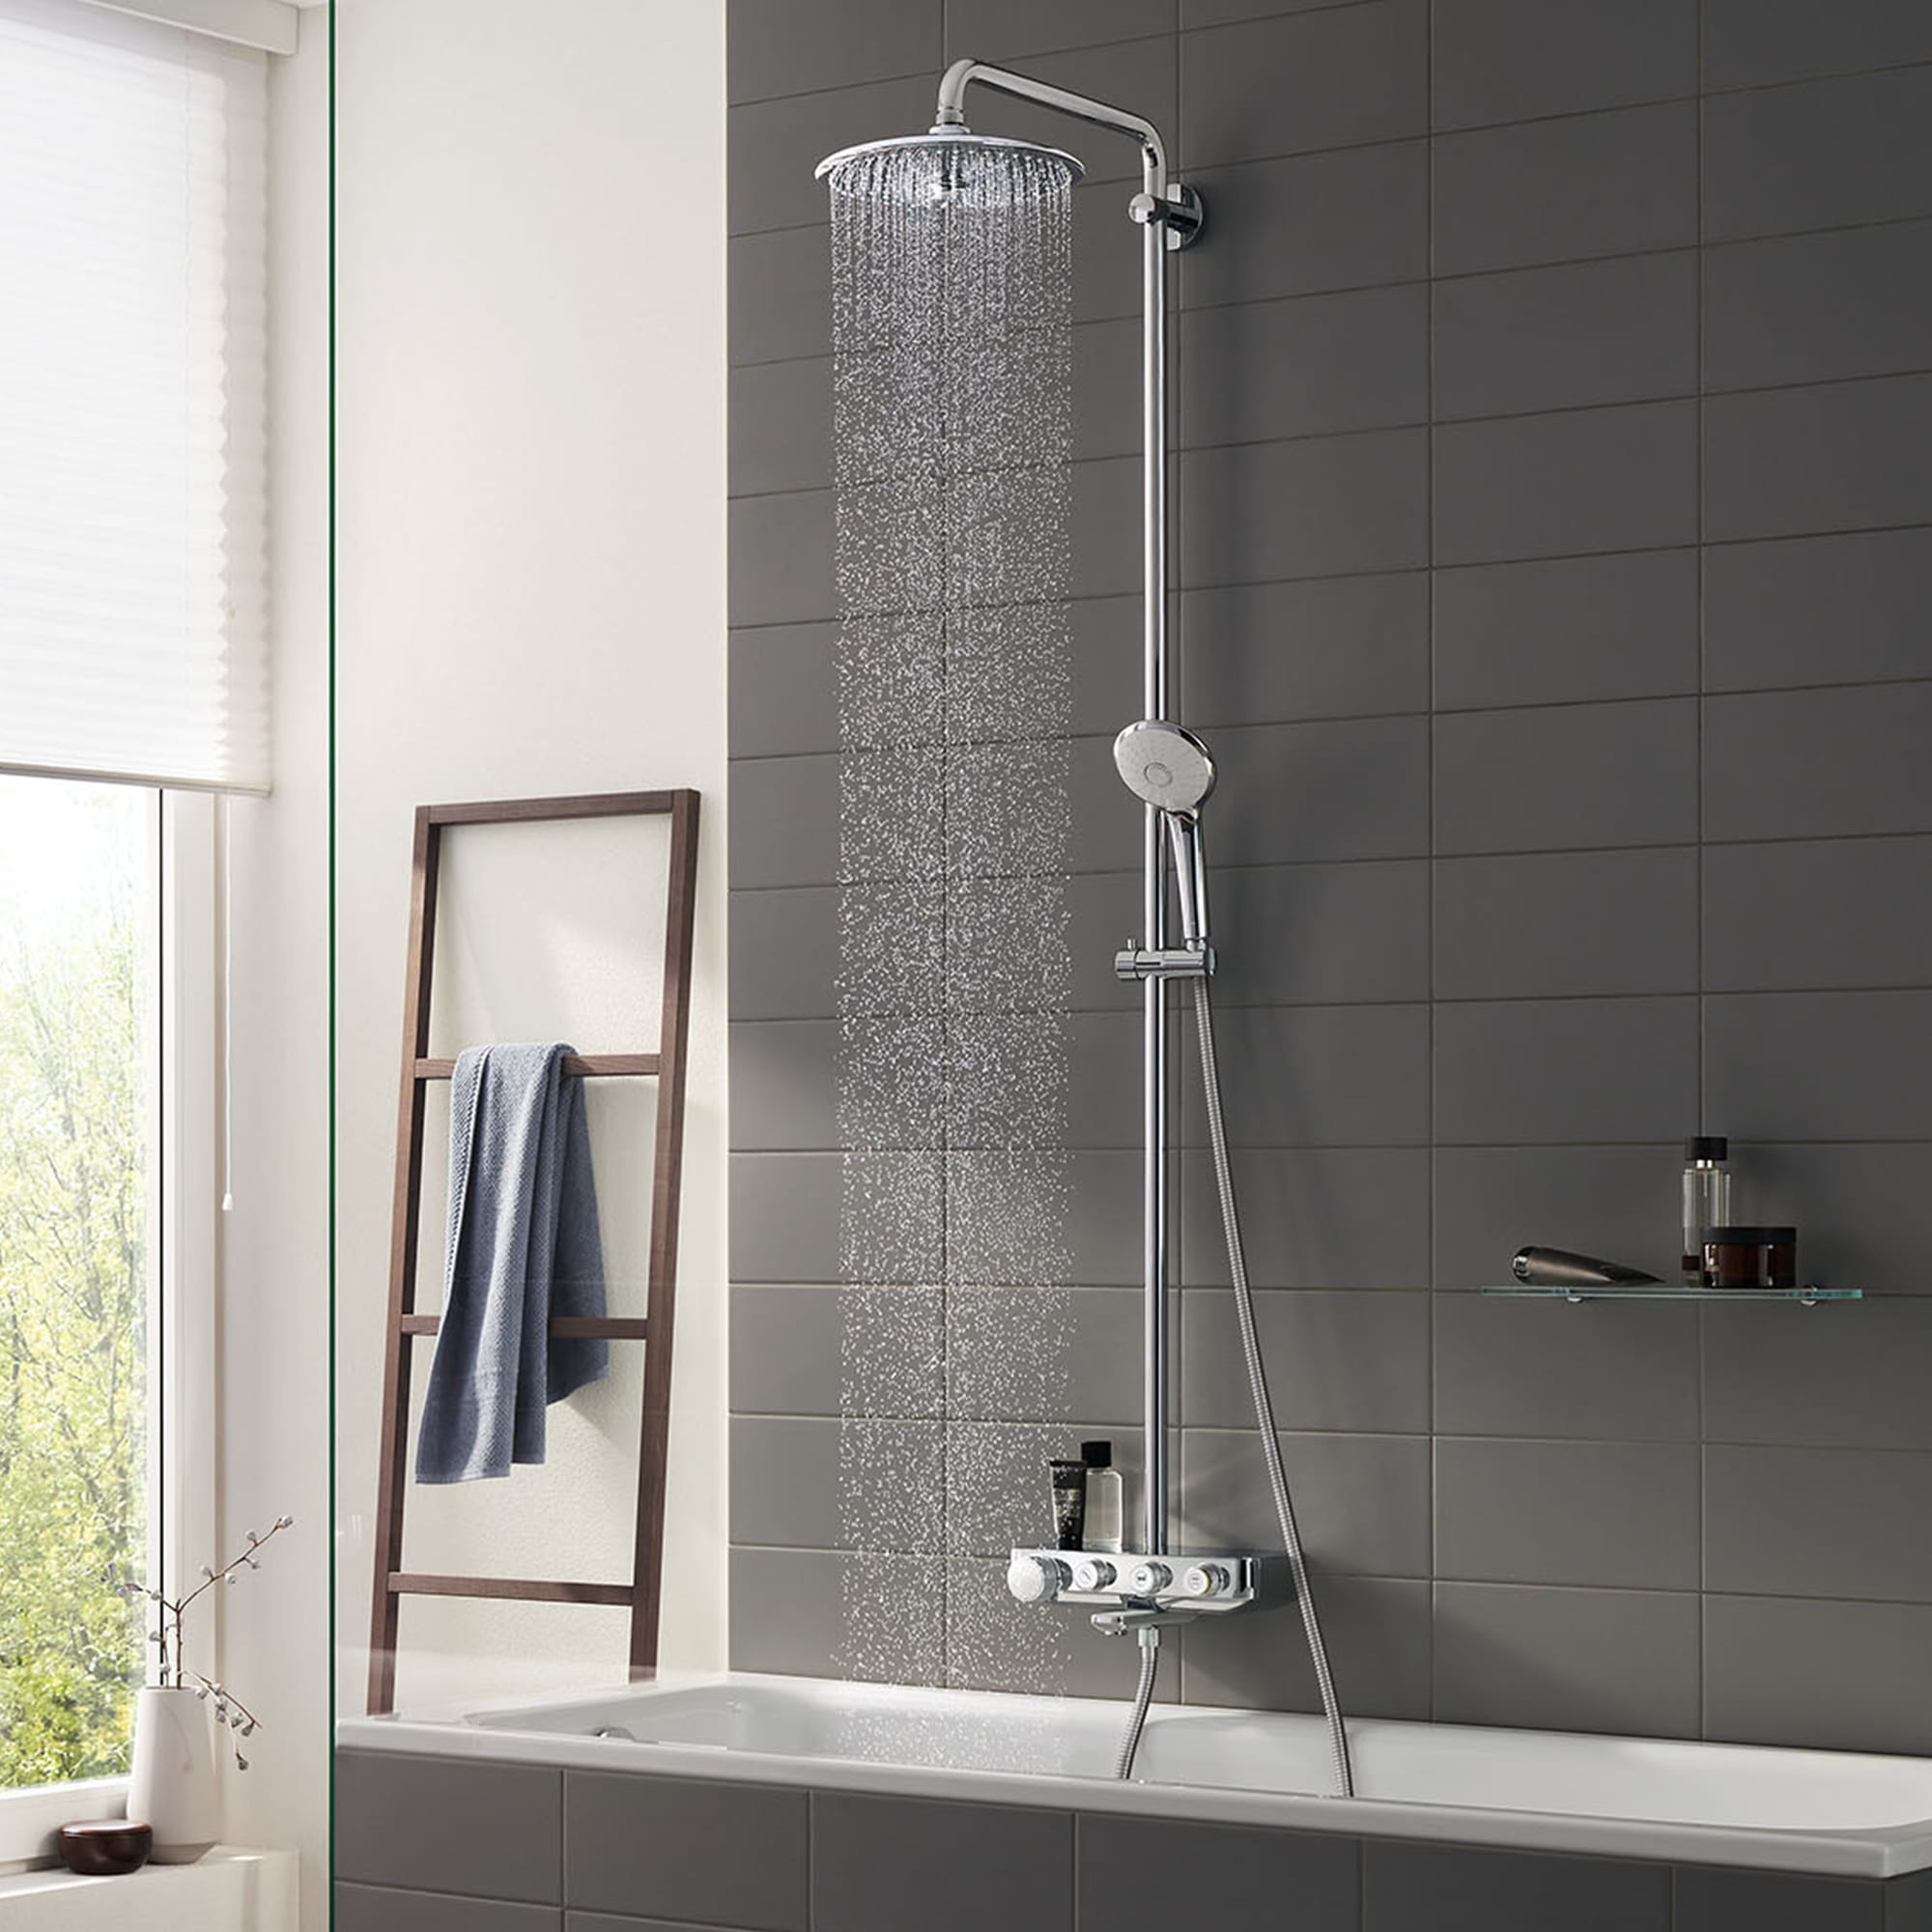 Euphoria SmartControl shower spraying water in tub